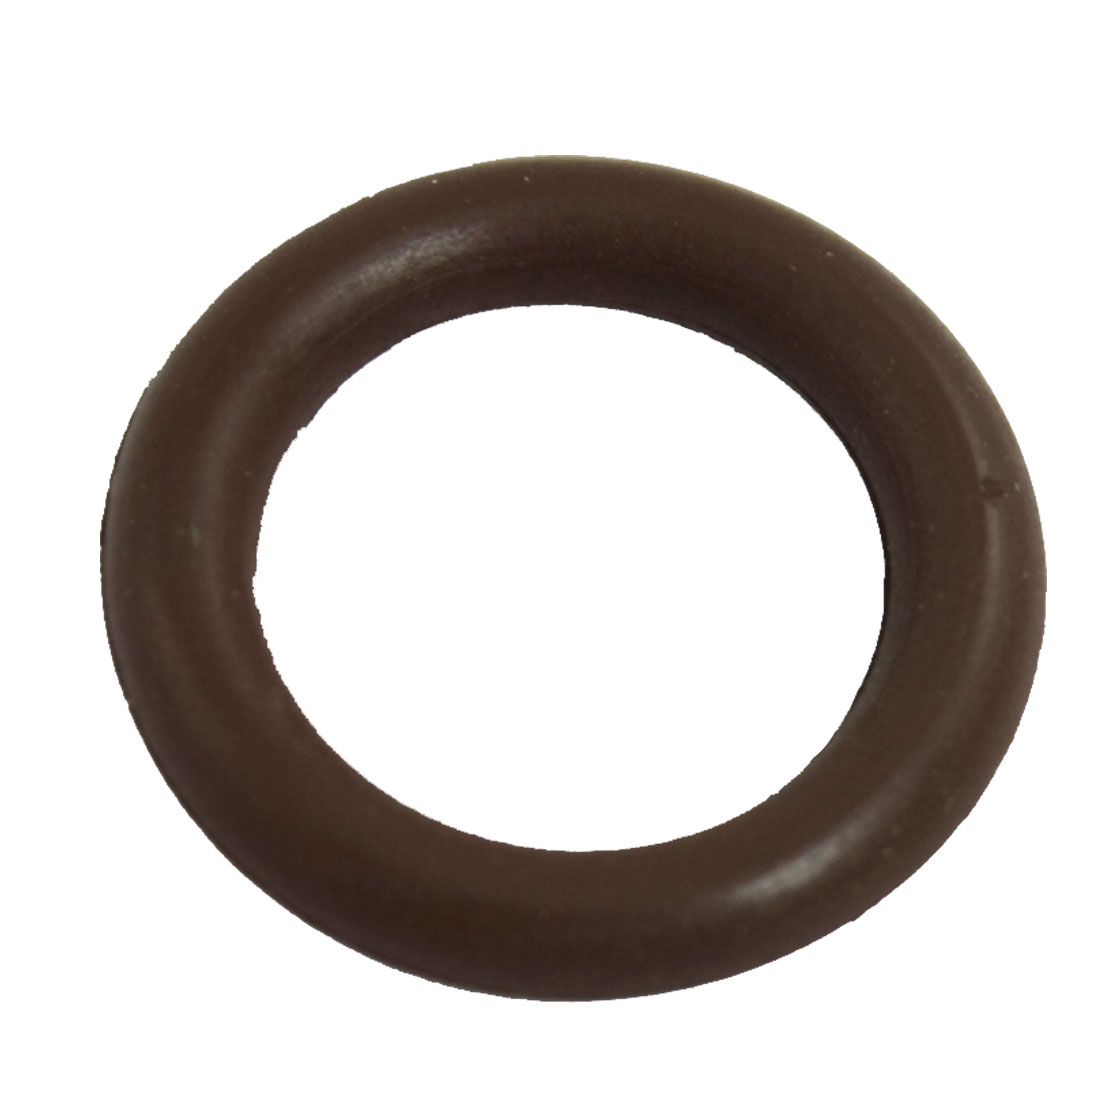 13mm x 19mm x 3mm Fluorine Rubber Sealing O Ring Gasket Washer Coffee Color